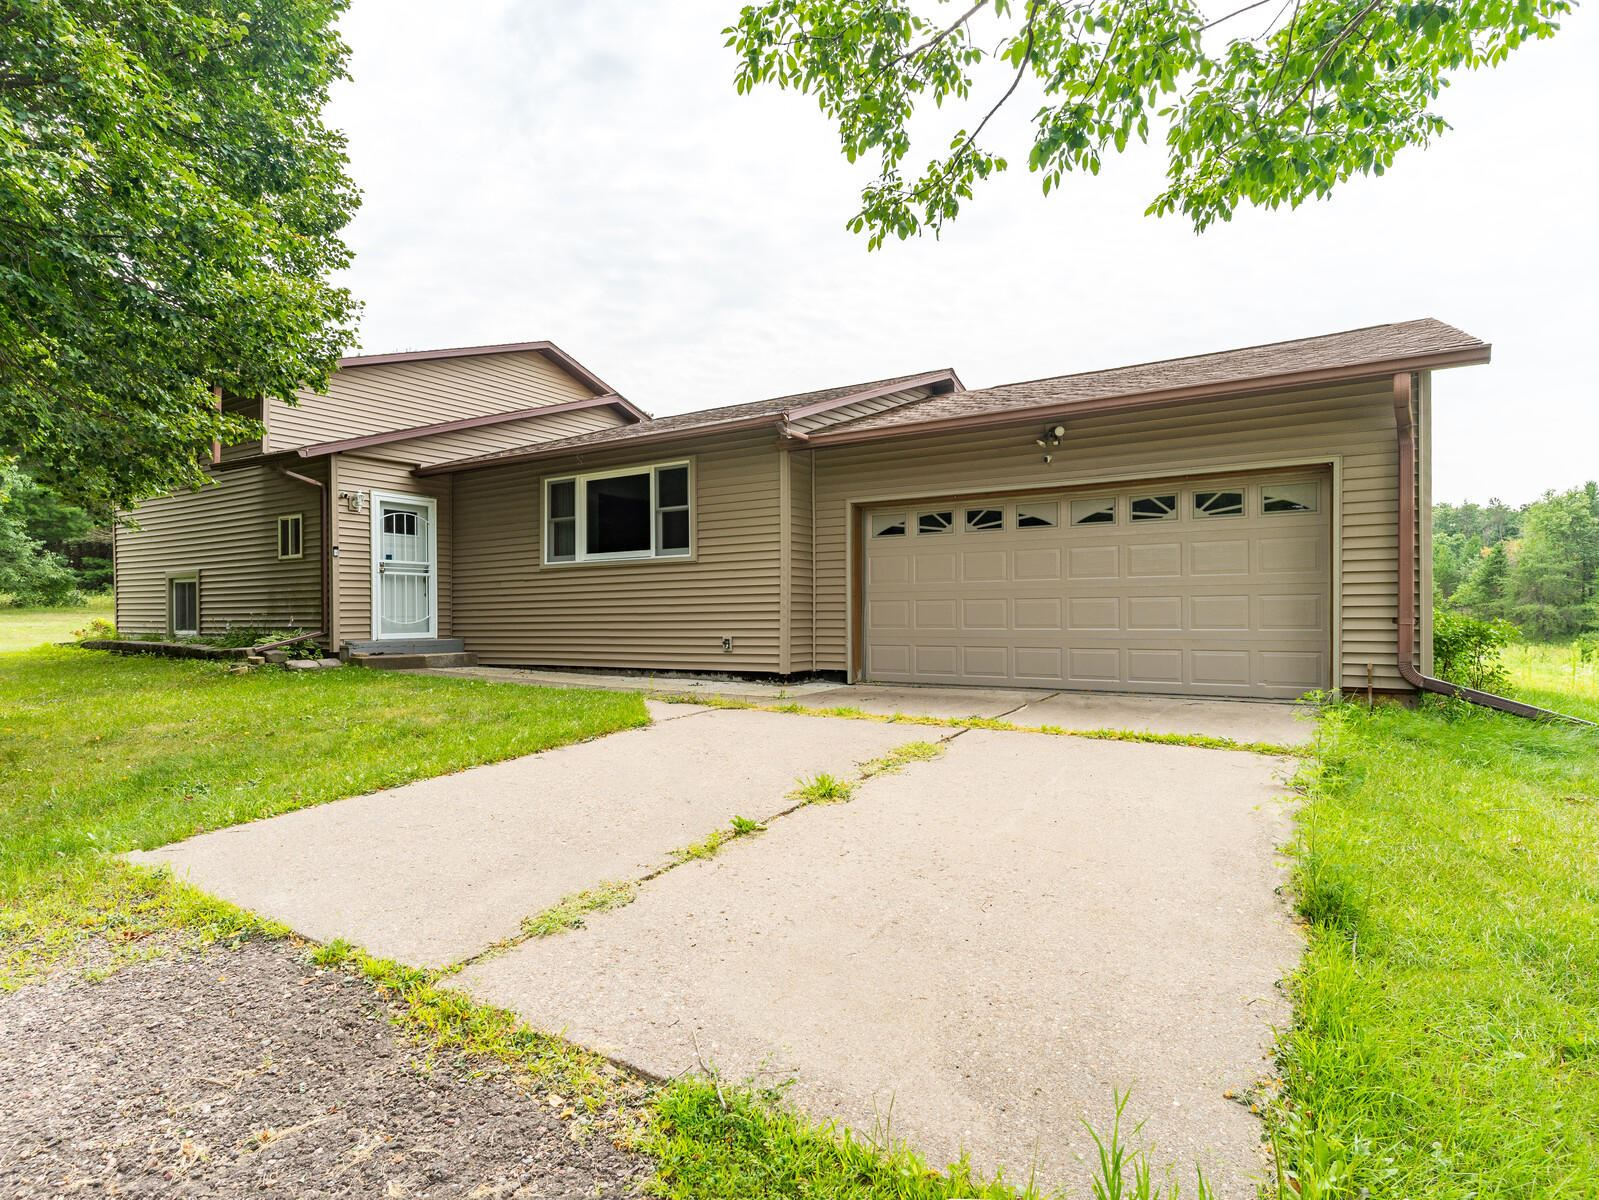 W13617 County Rd C, Albion, WI 54615 - MLS#: 1755803